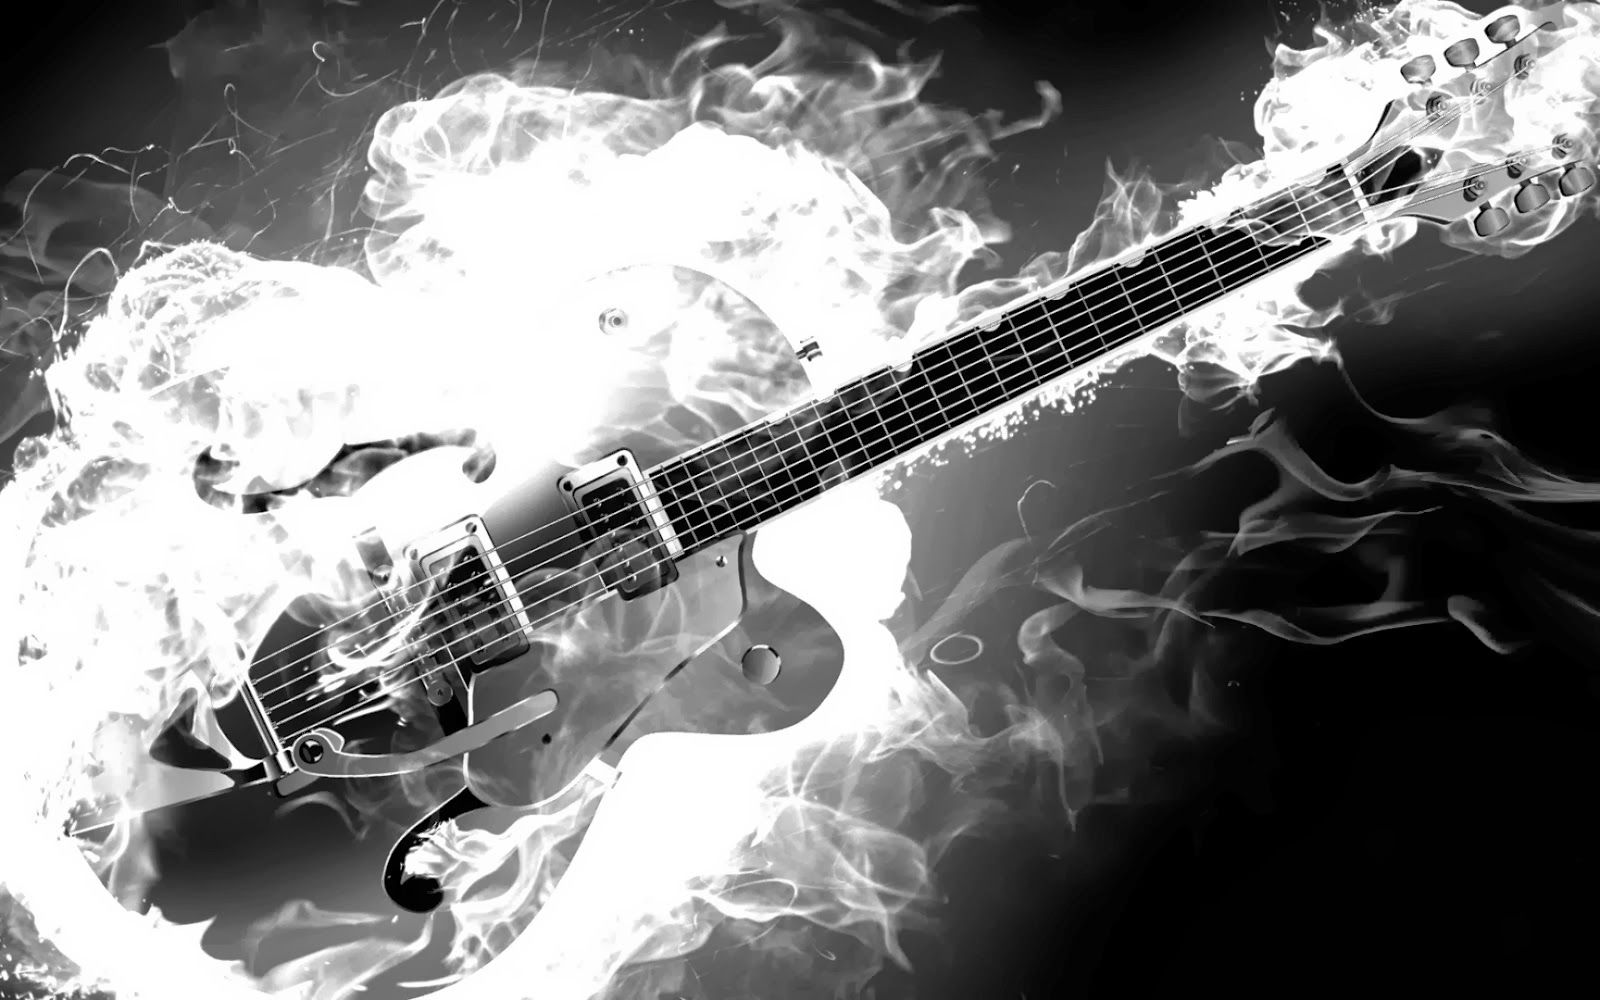 Hd wallpaper guitar - Guitar Wallpapers Hd Pictures One Hd Wallpaper Pictures